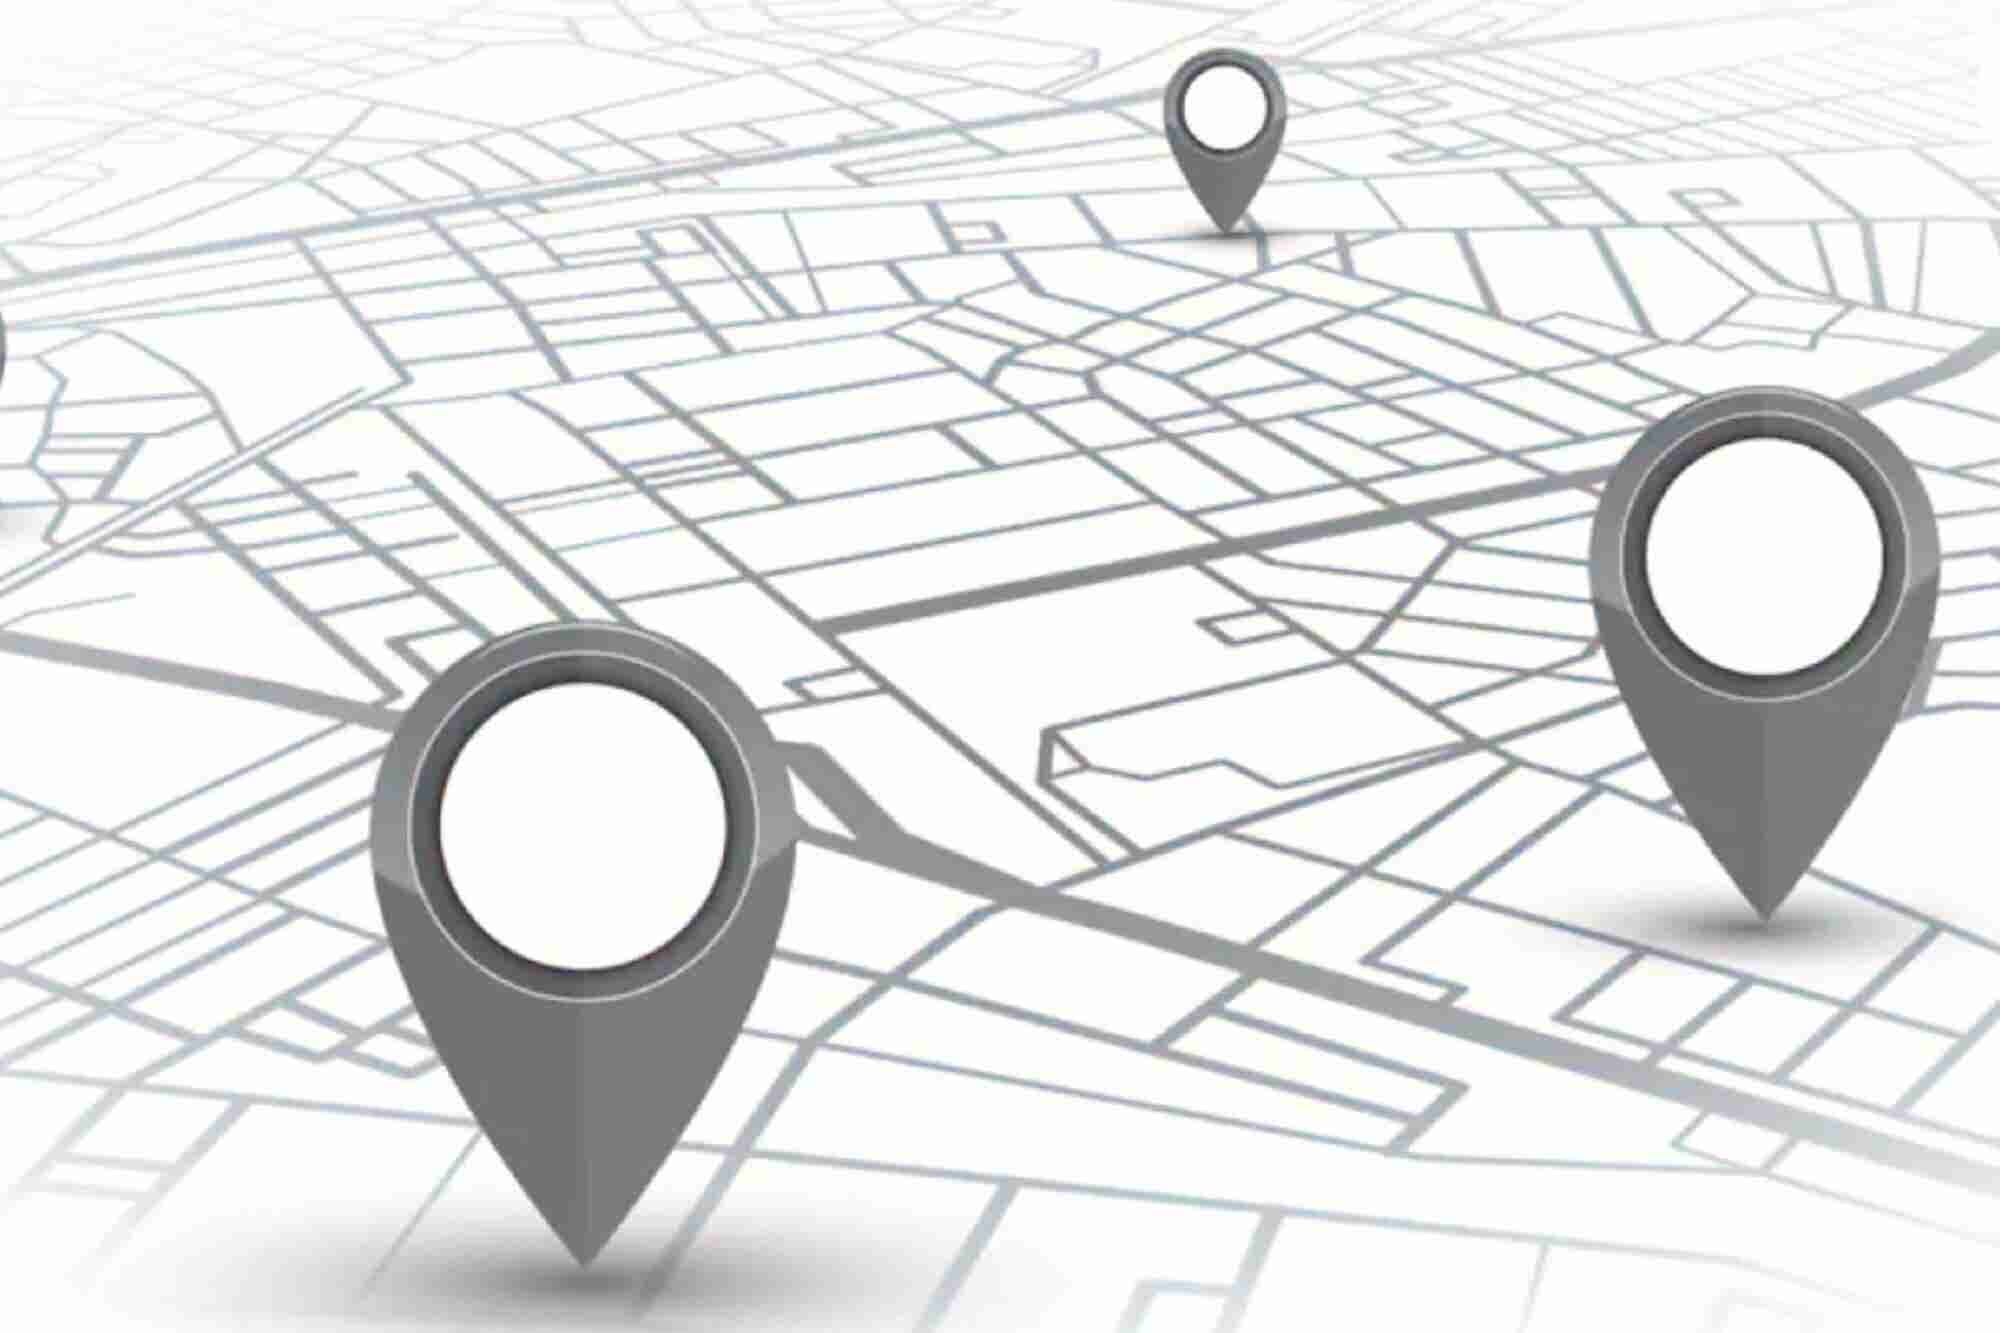 Beware of Google's Location Tracker & Pokemon Go is Back: 4 Things to Know Today